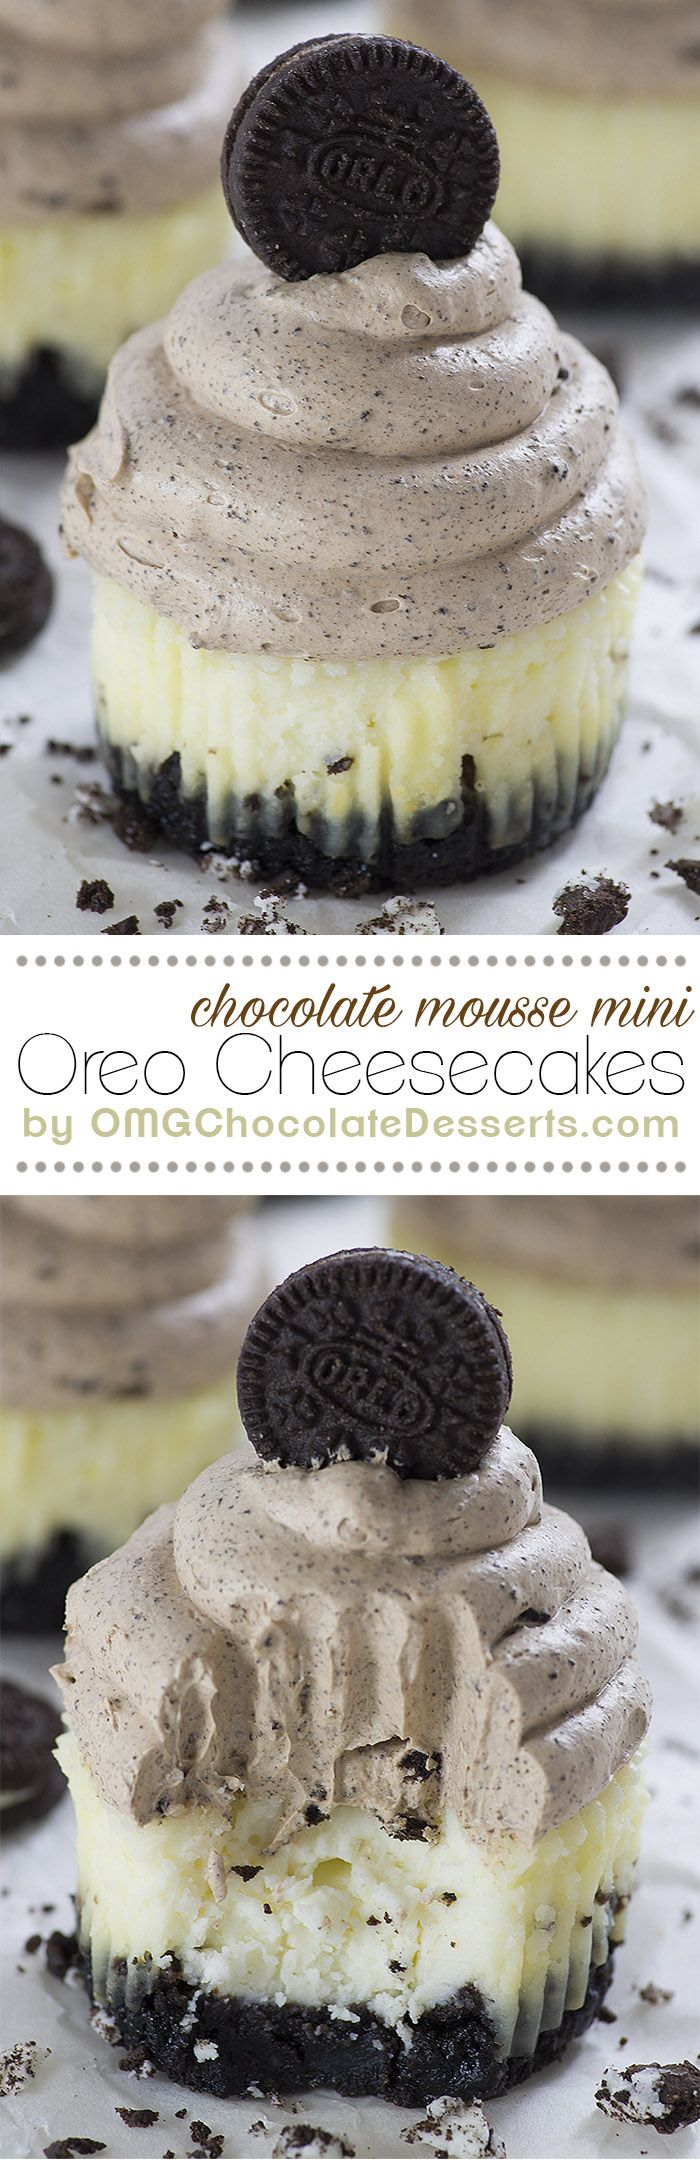 Chocolate Mousse Mini Oreo Cheesecakes - Chocolate Dessert Recipes - OMG Chocolate Desserts